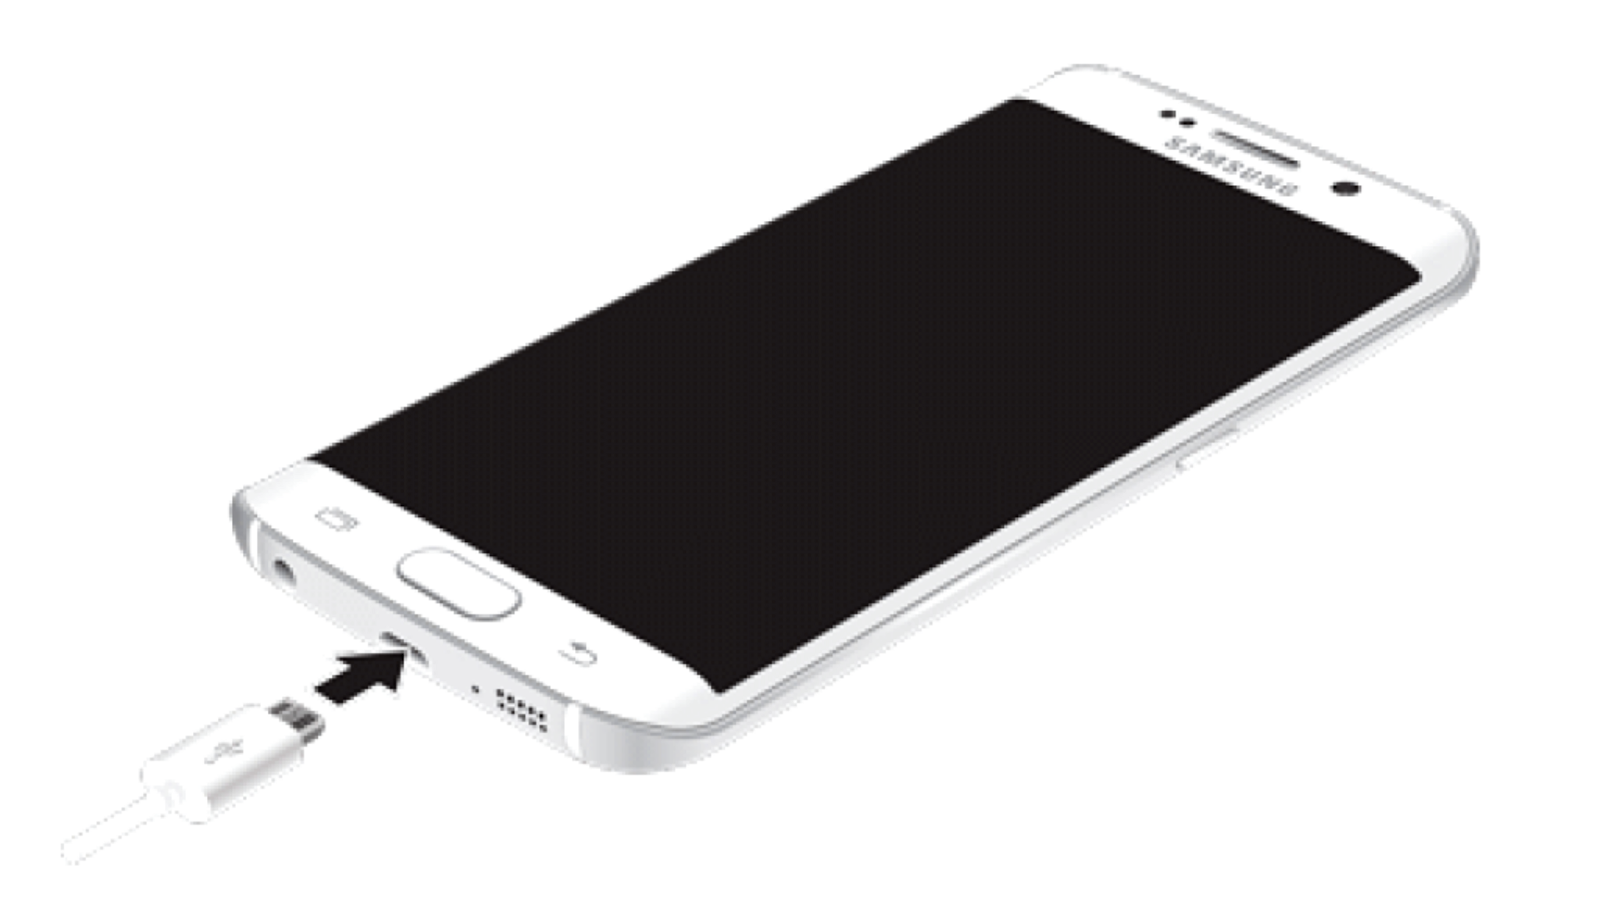 Samsung Galaxy Note 6 Manual - Battery Charging